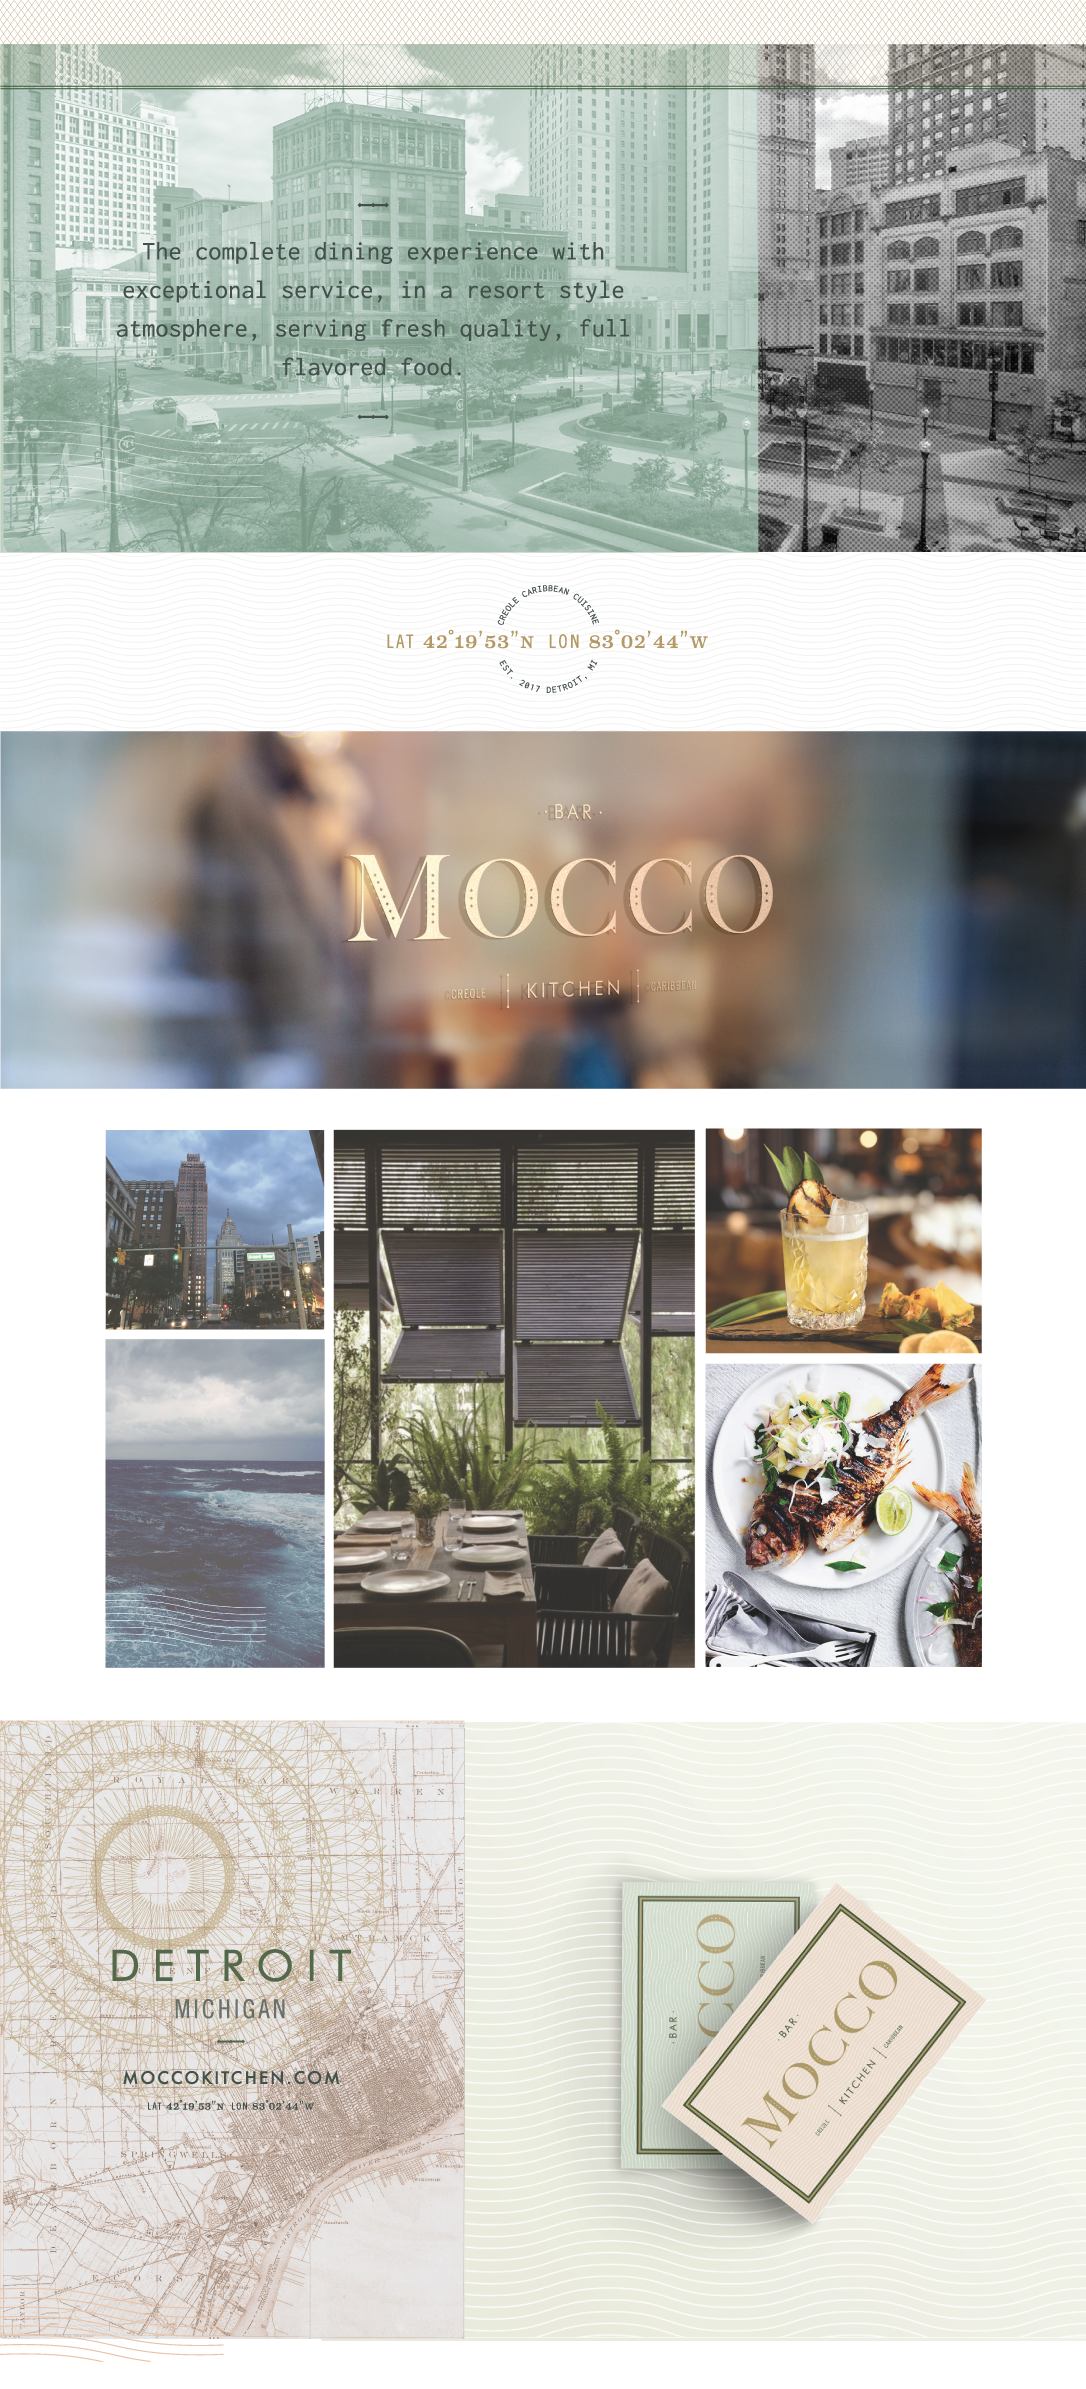 MOCCO-Photos-section2.png